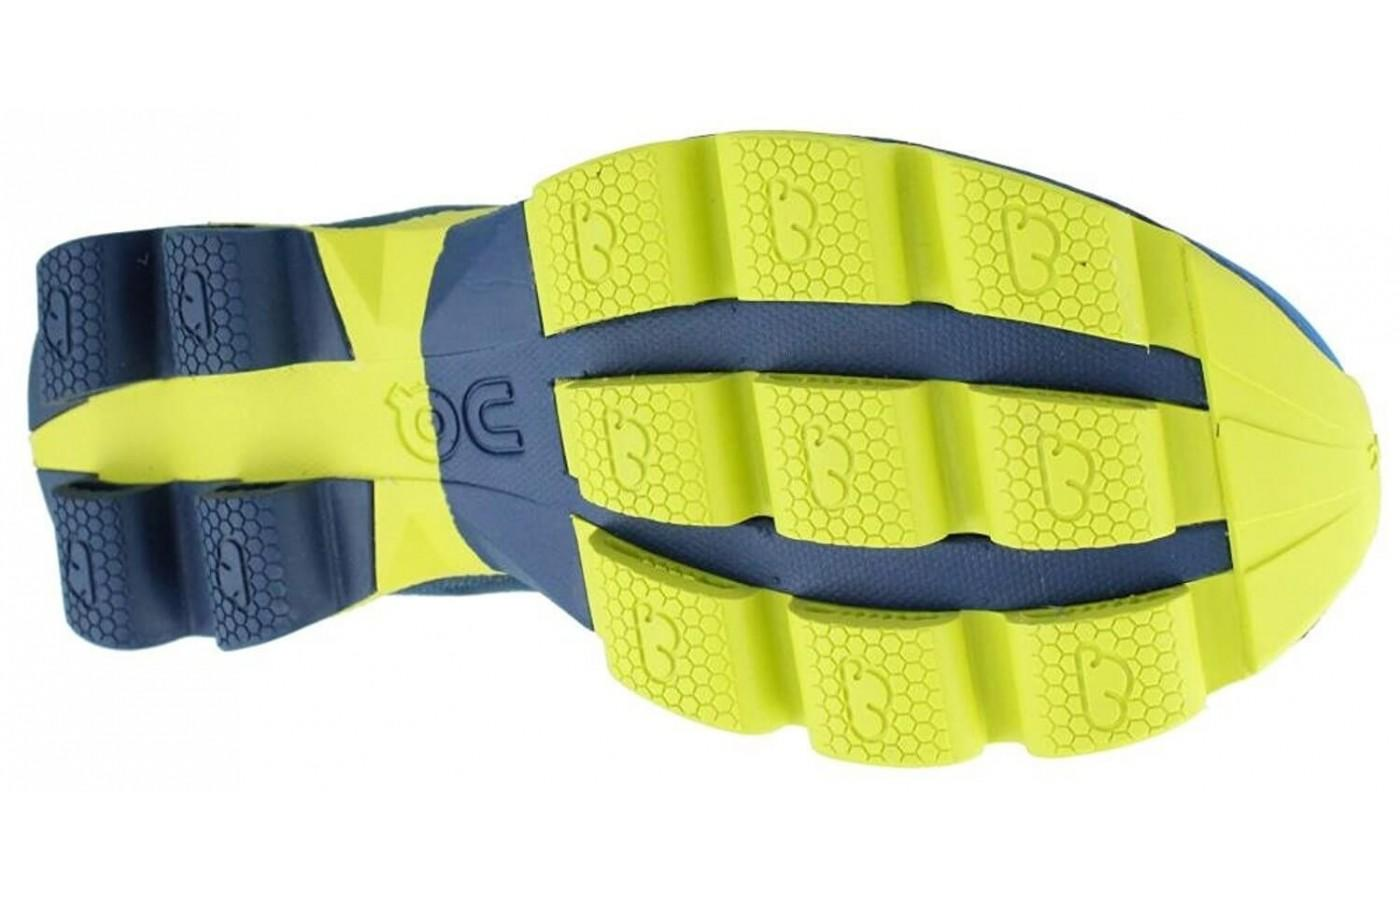 The honeycomb shape on the underfoot add traction and grip to the shoe.